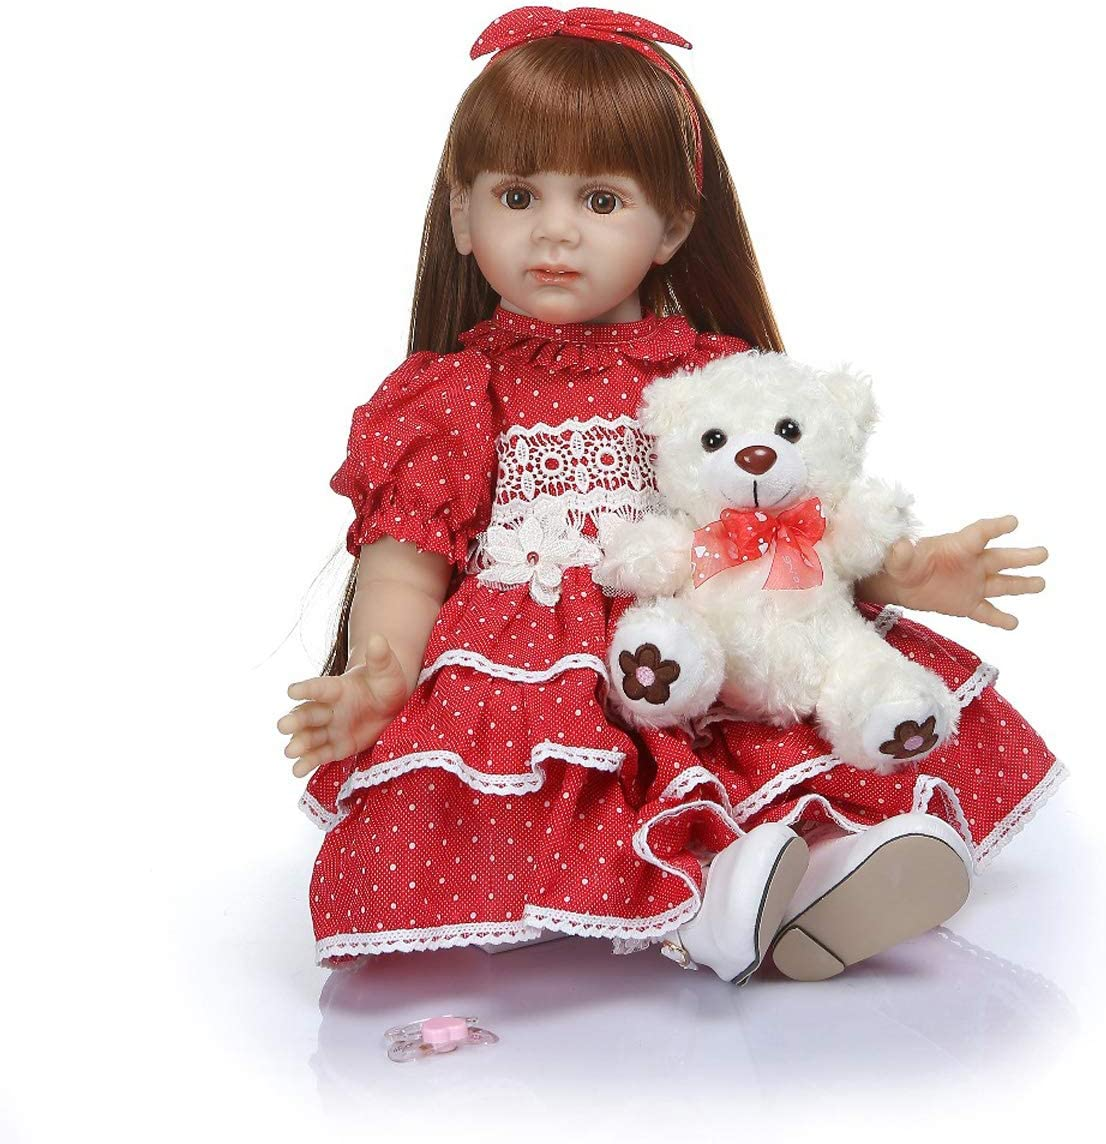 TERABITHIA 24 inch 60cm So Truly Size Real Lon Recommended Ultra-Cheap Deals 6-9Month Big Baby